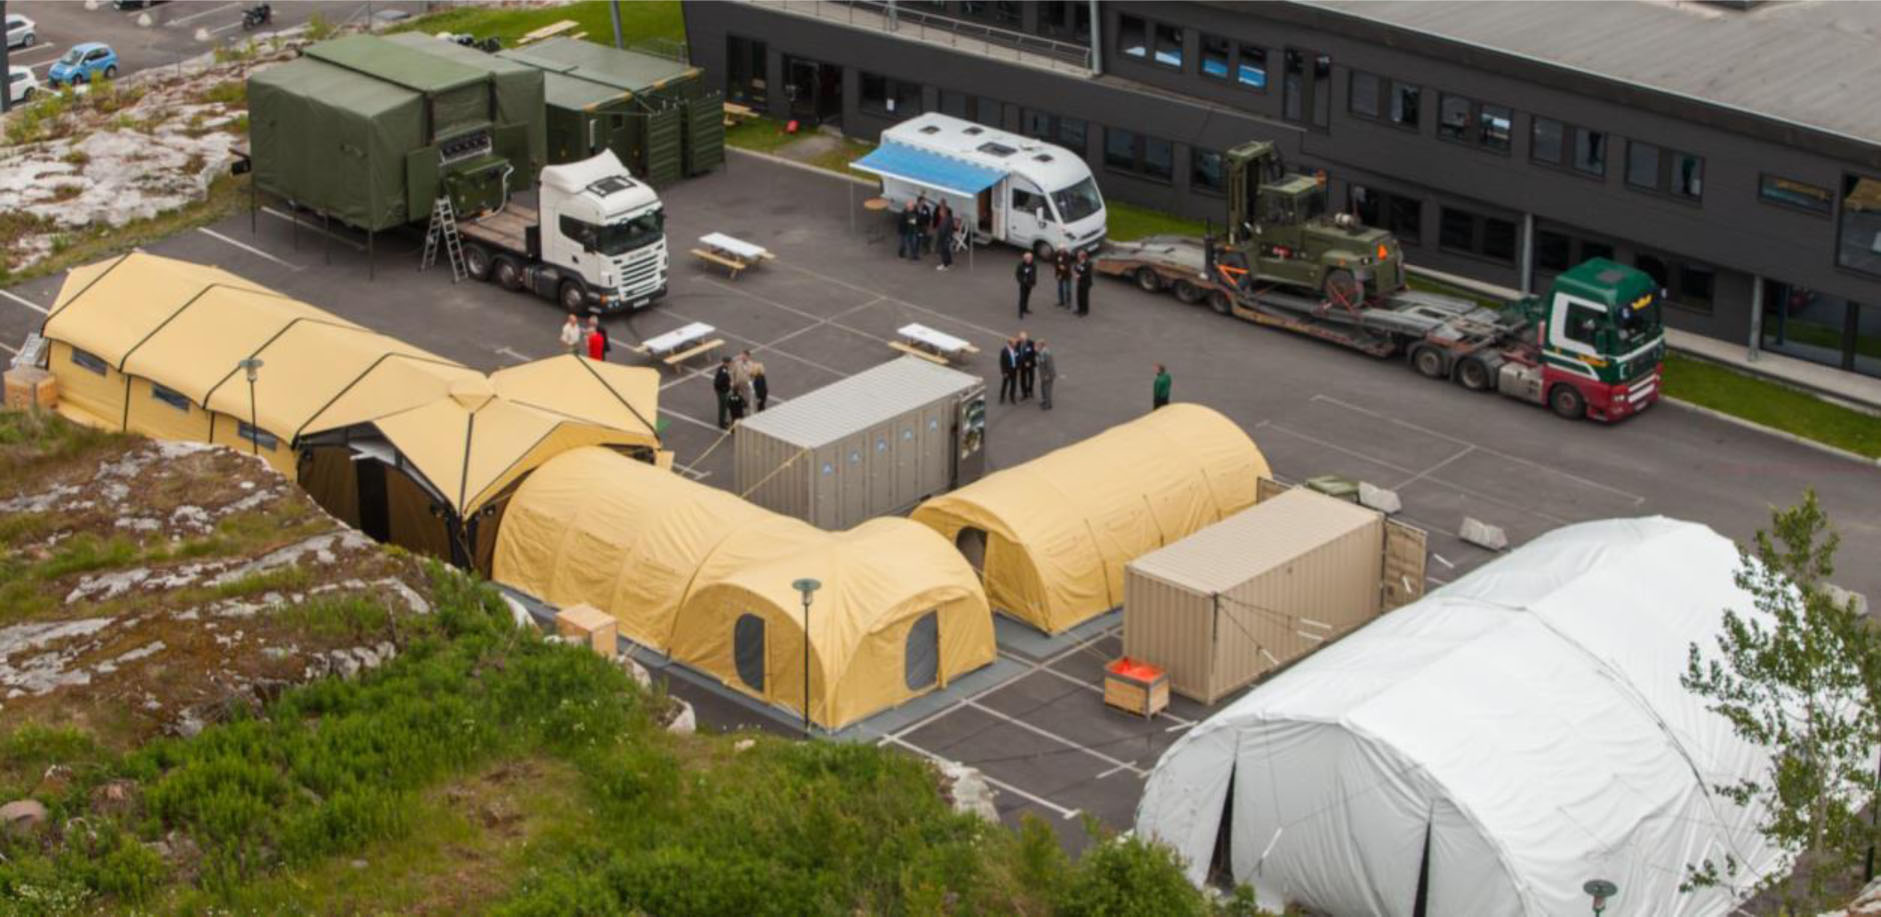 Norlense site tents